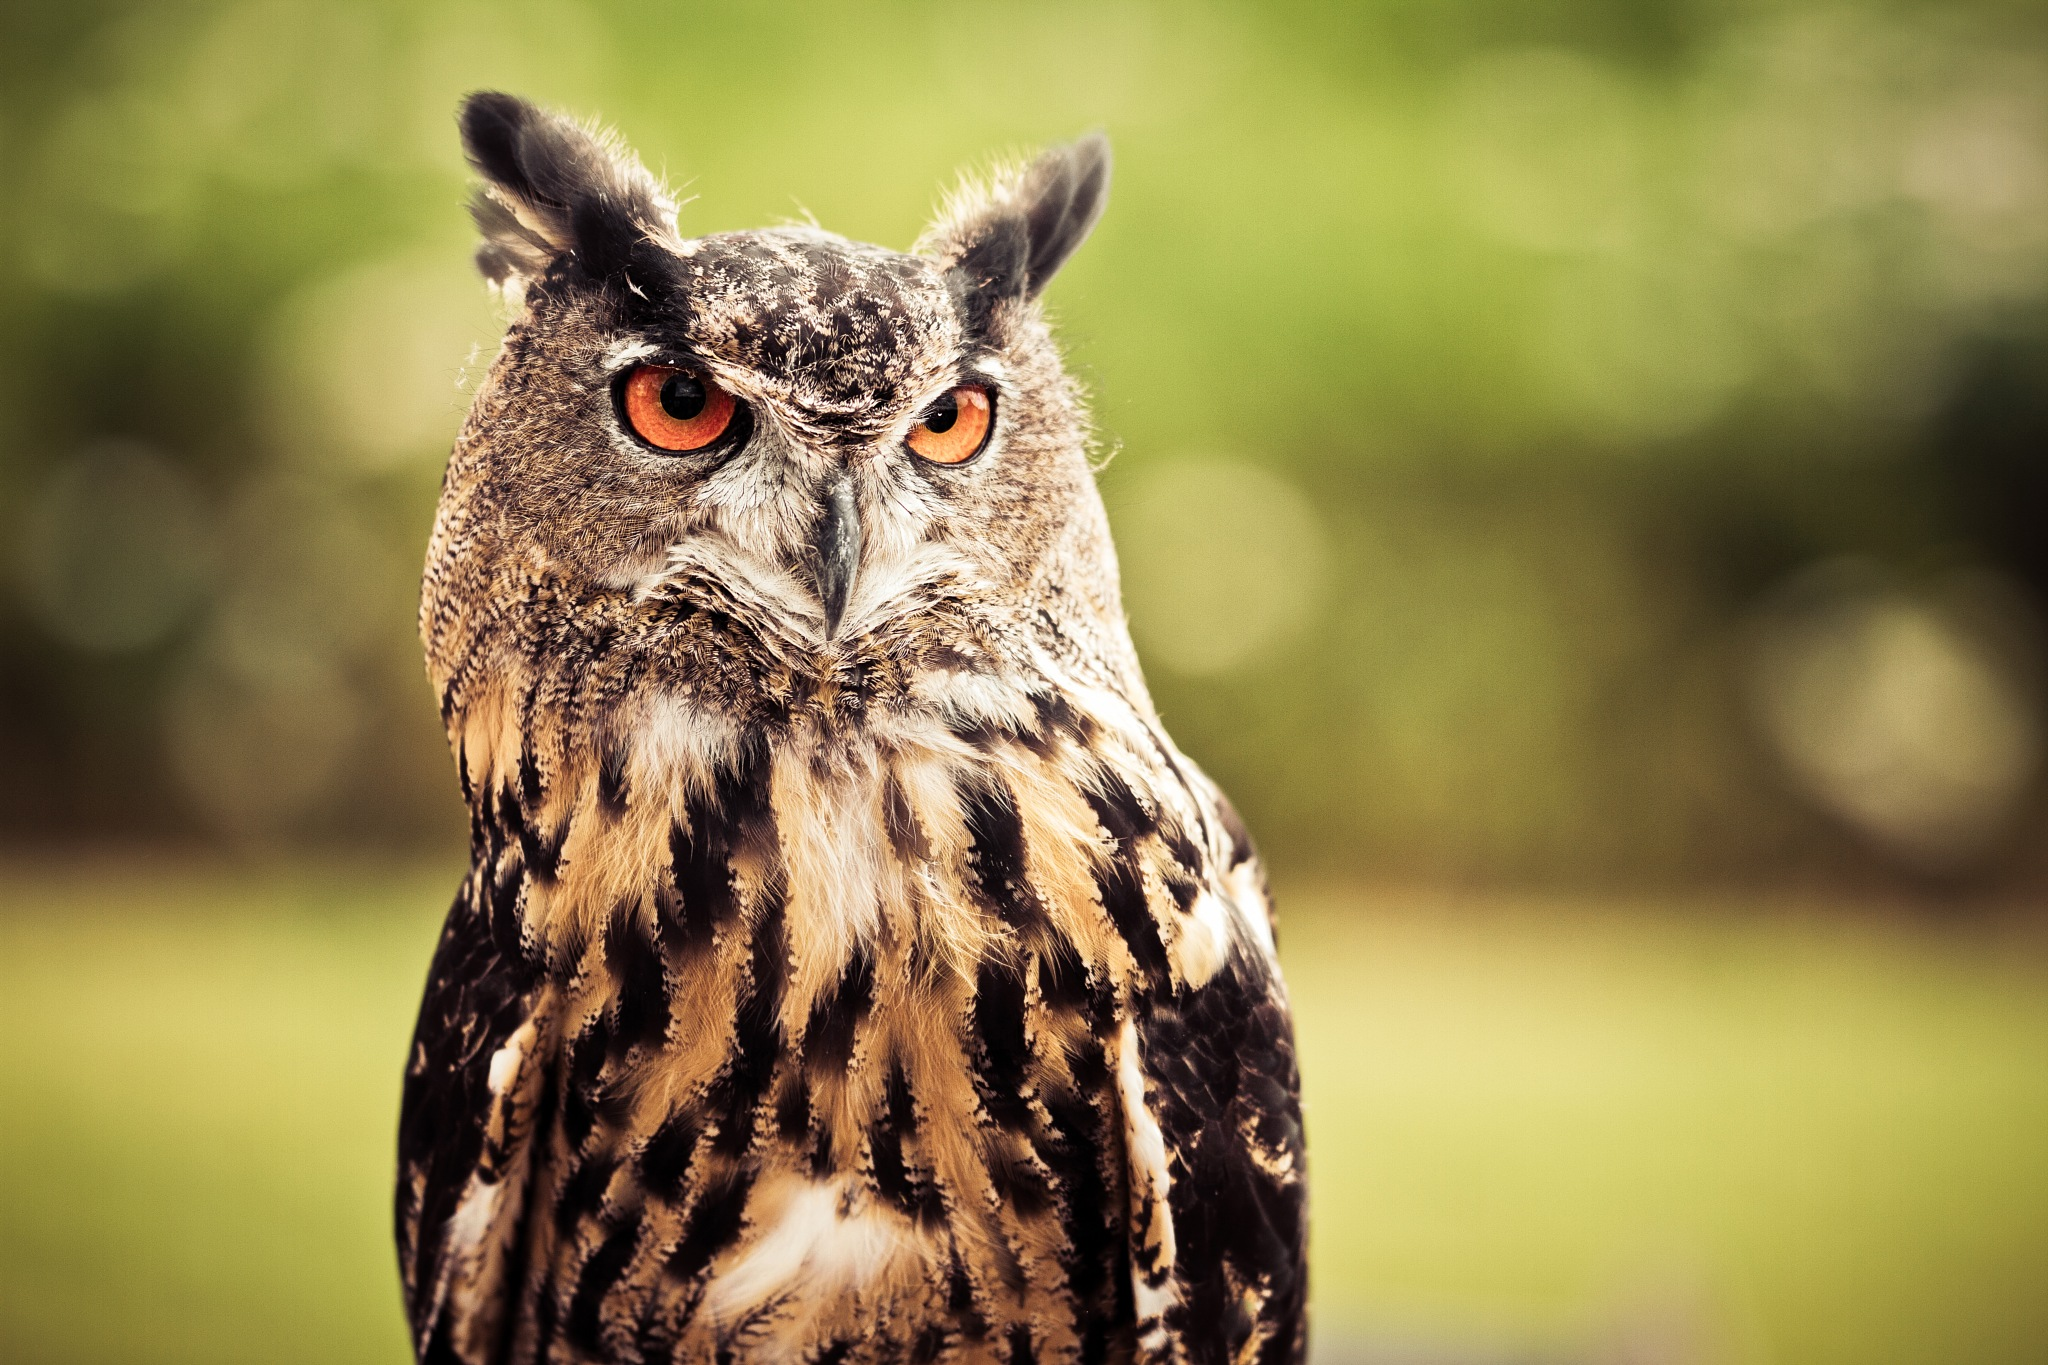 Eagle-Owl Pose by JL Photography